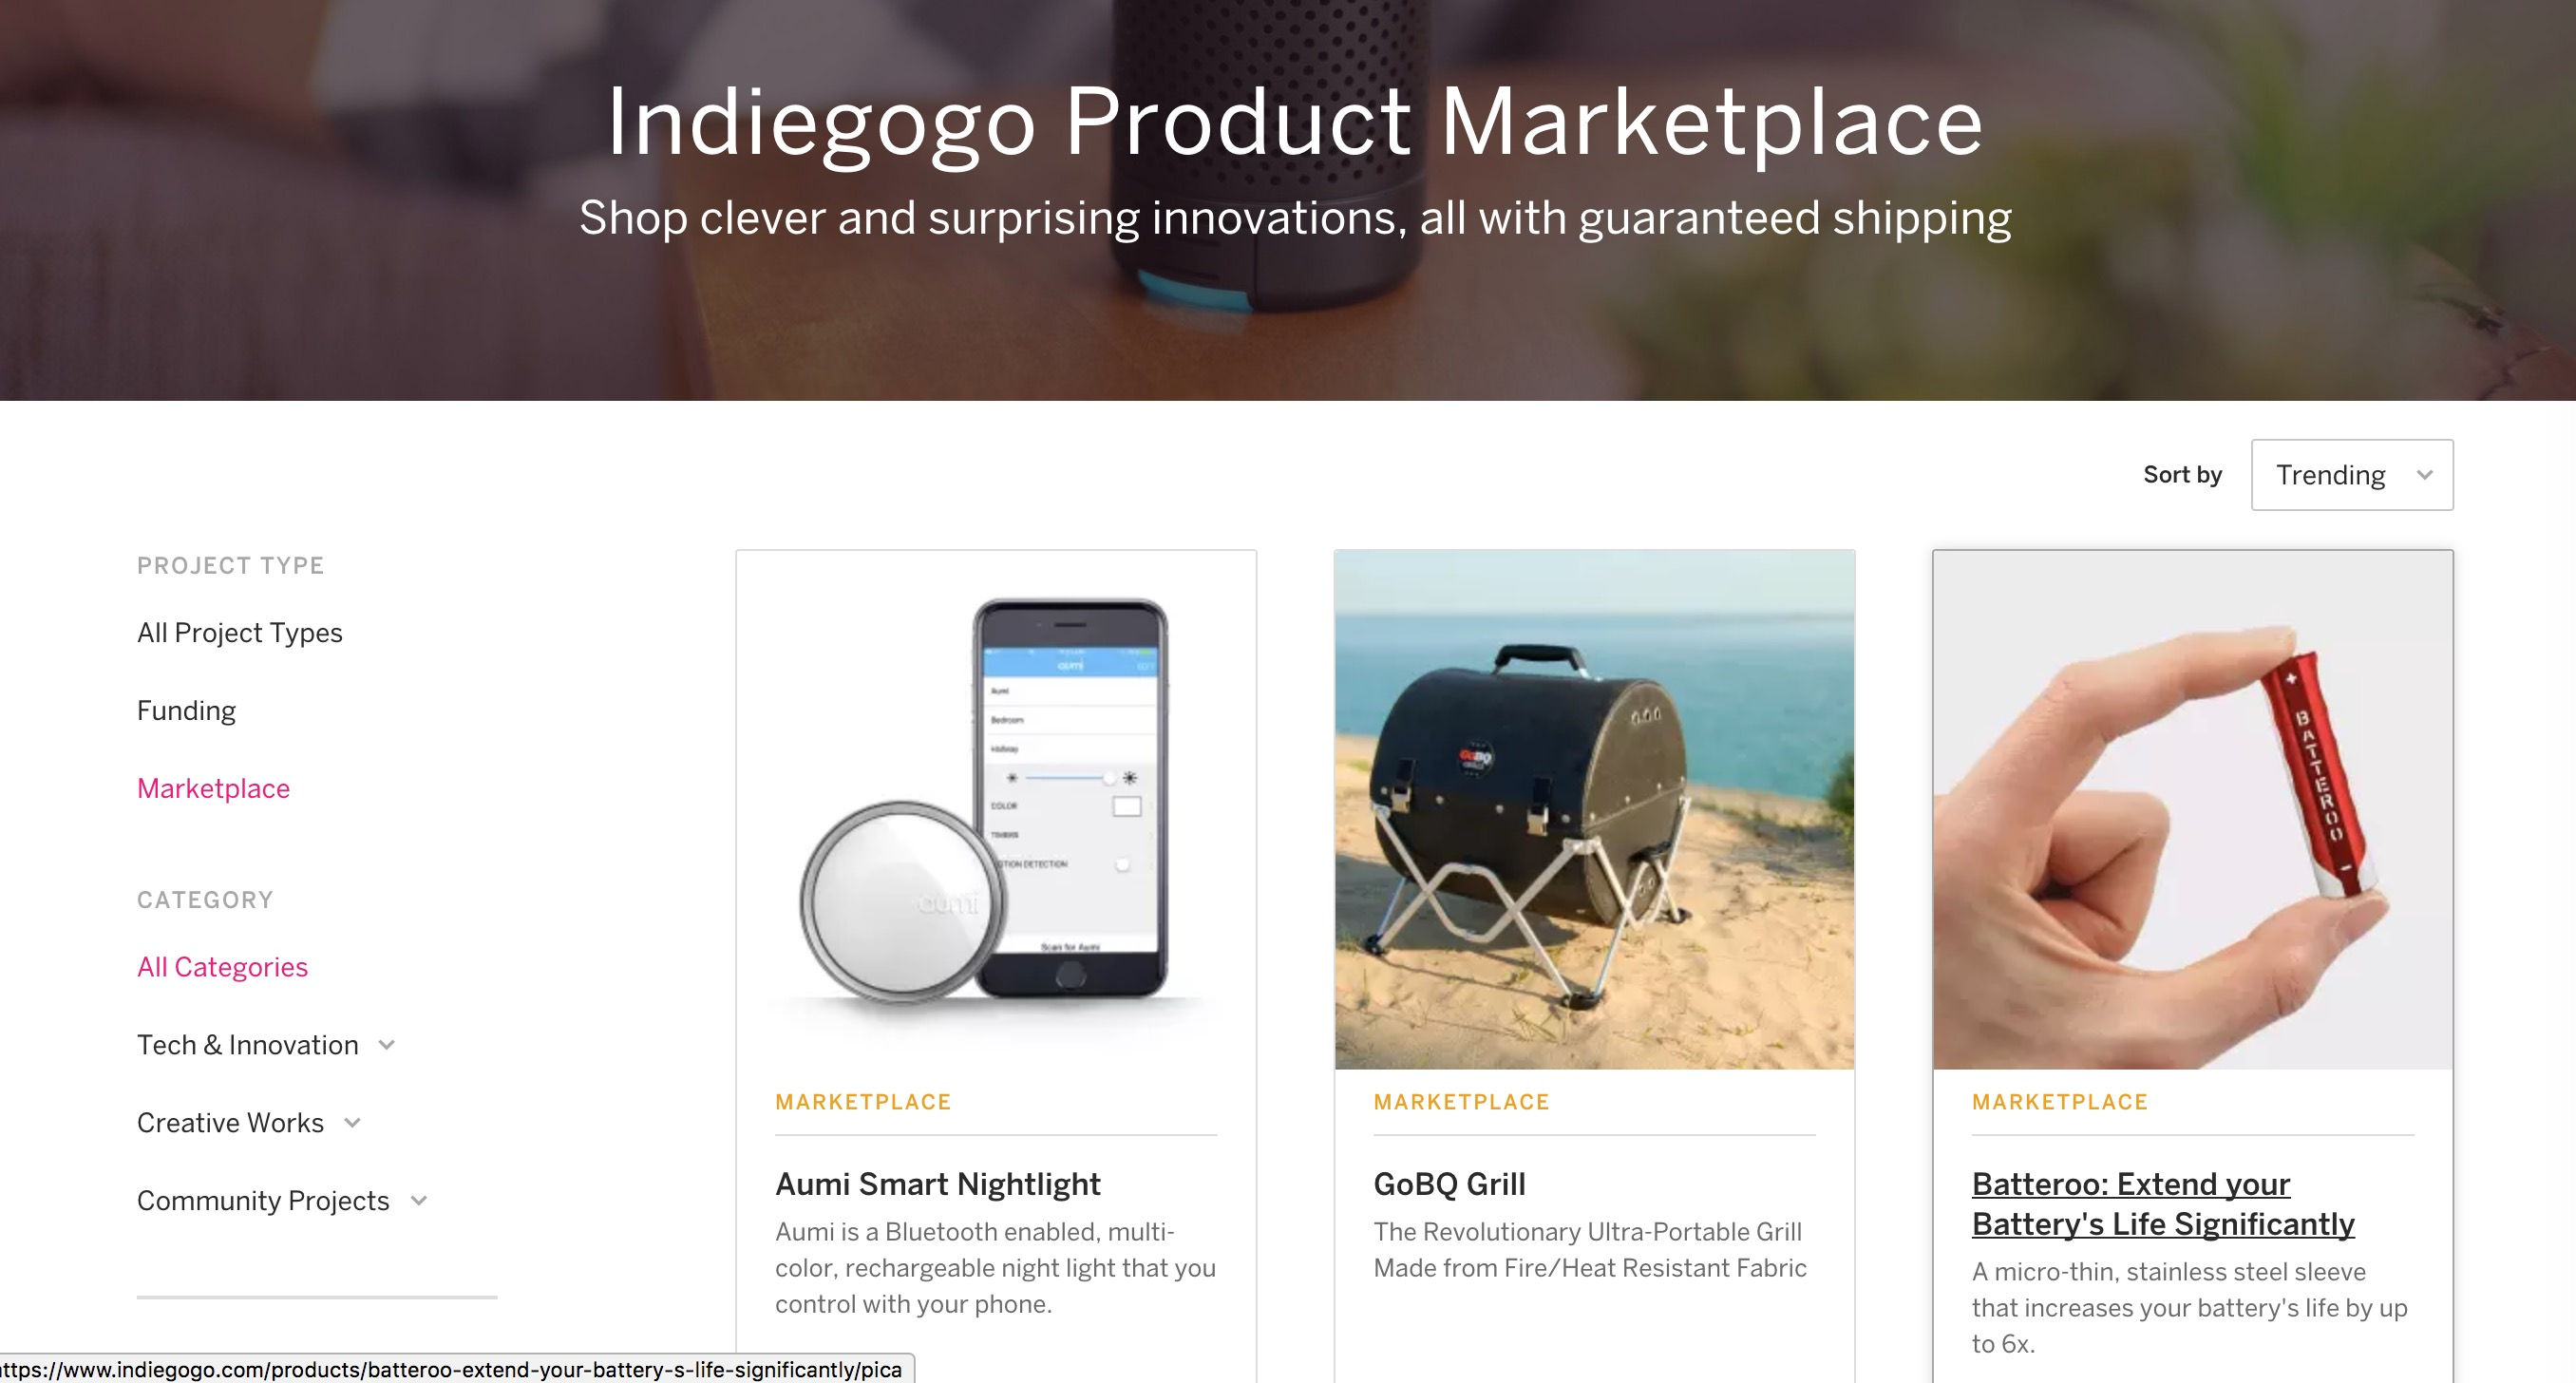 Indiegogo created a marketplace for successfully-funded projects